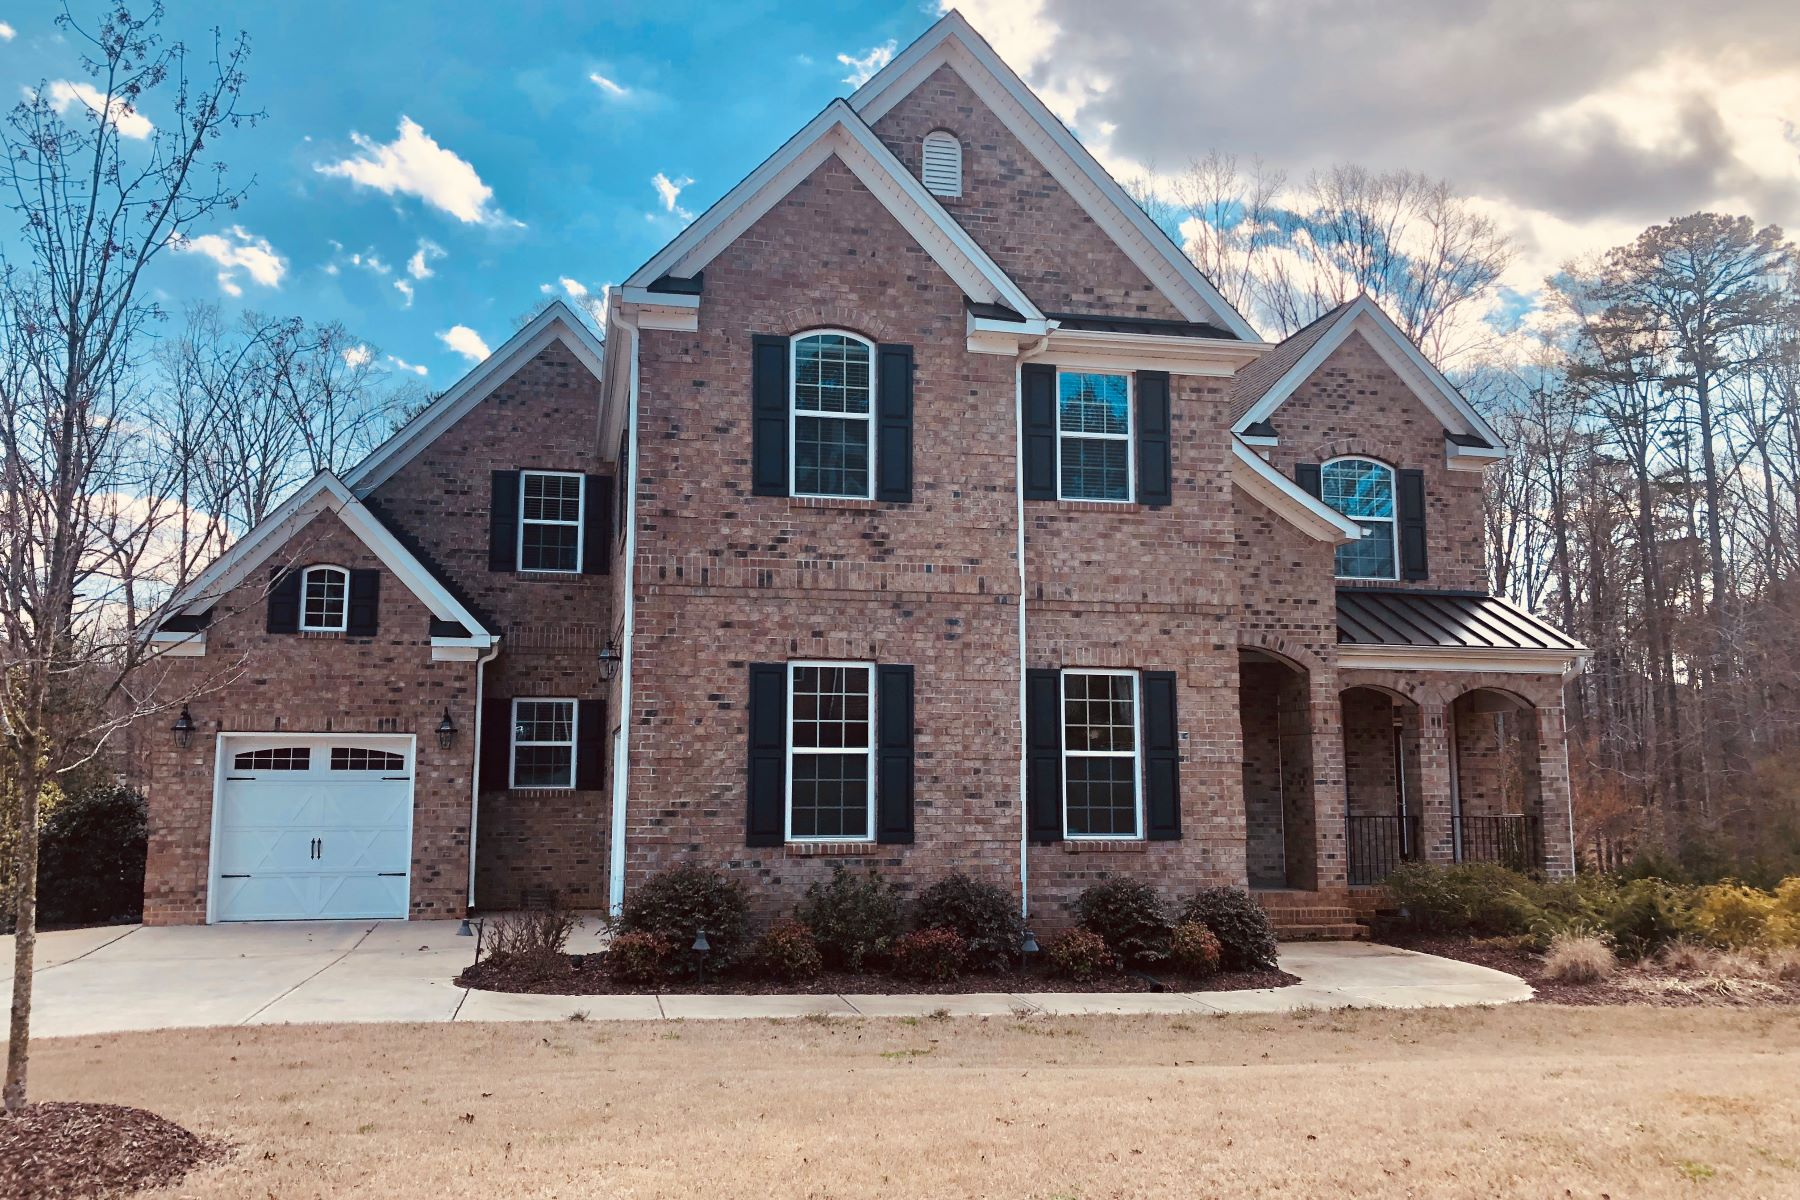 Single Family Home for Active at 5012 Darcy Woods Lane Fuquay Varina, North Carolina 27526 United States